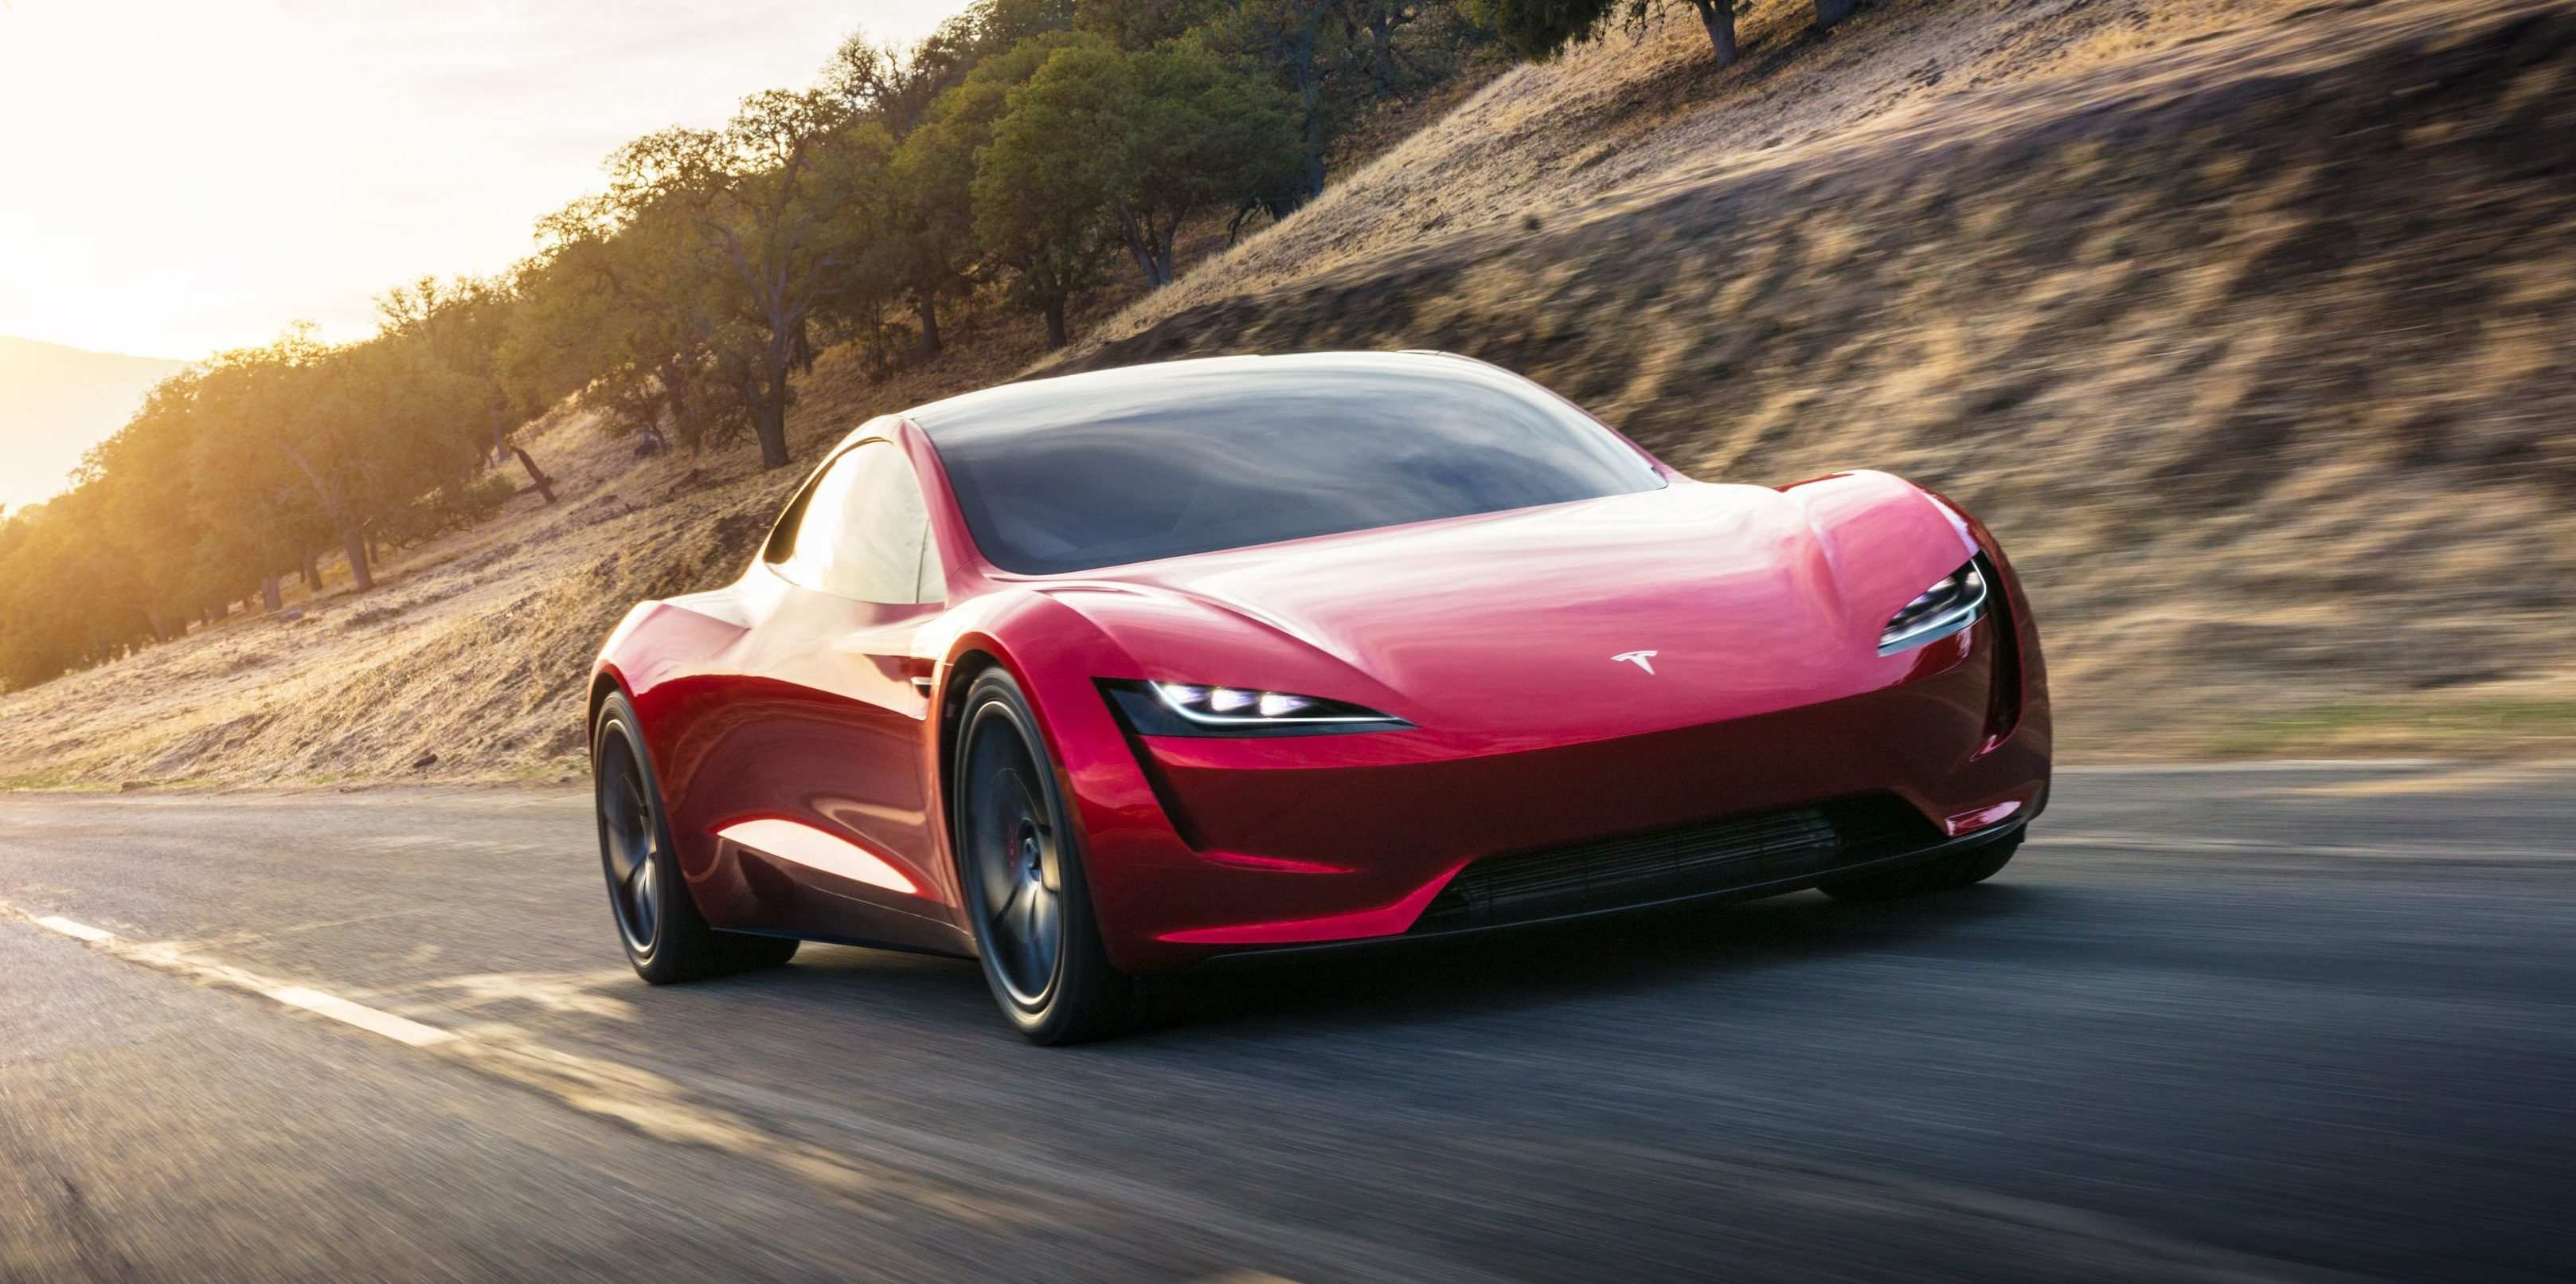 29 Best Review 2020 Tesla Roadster Battery Price and Review with 2020 Tesla Roadster Battery